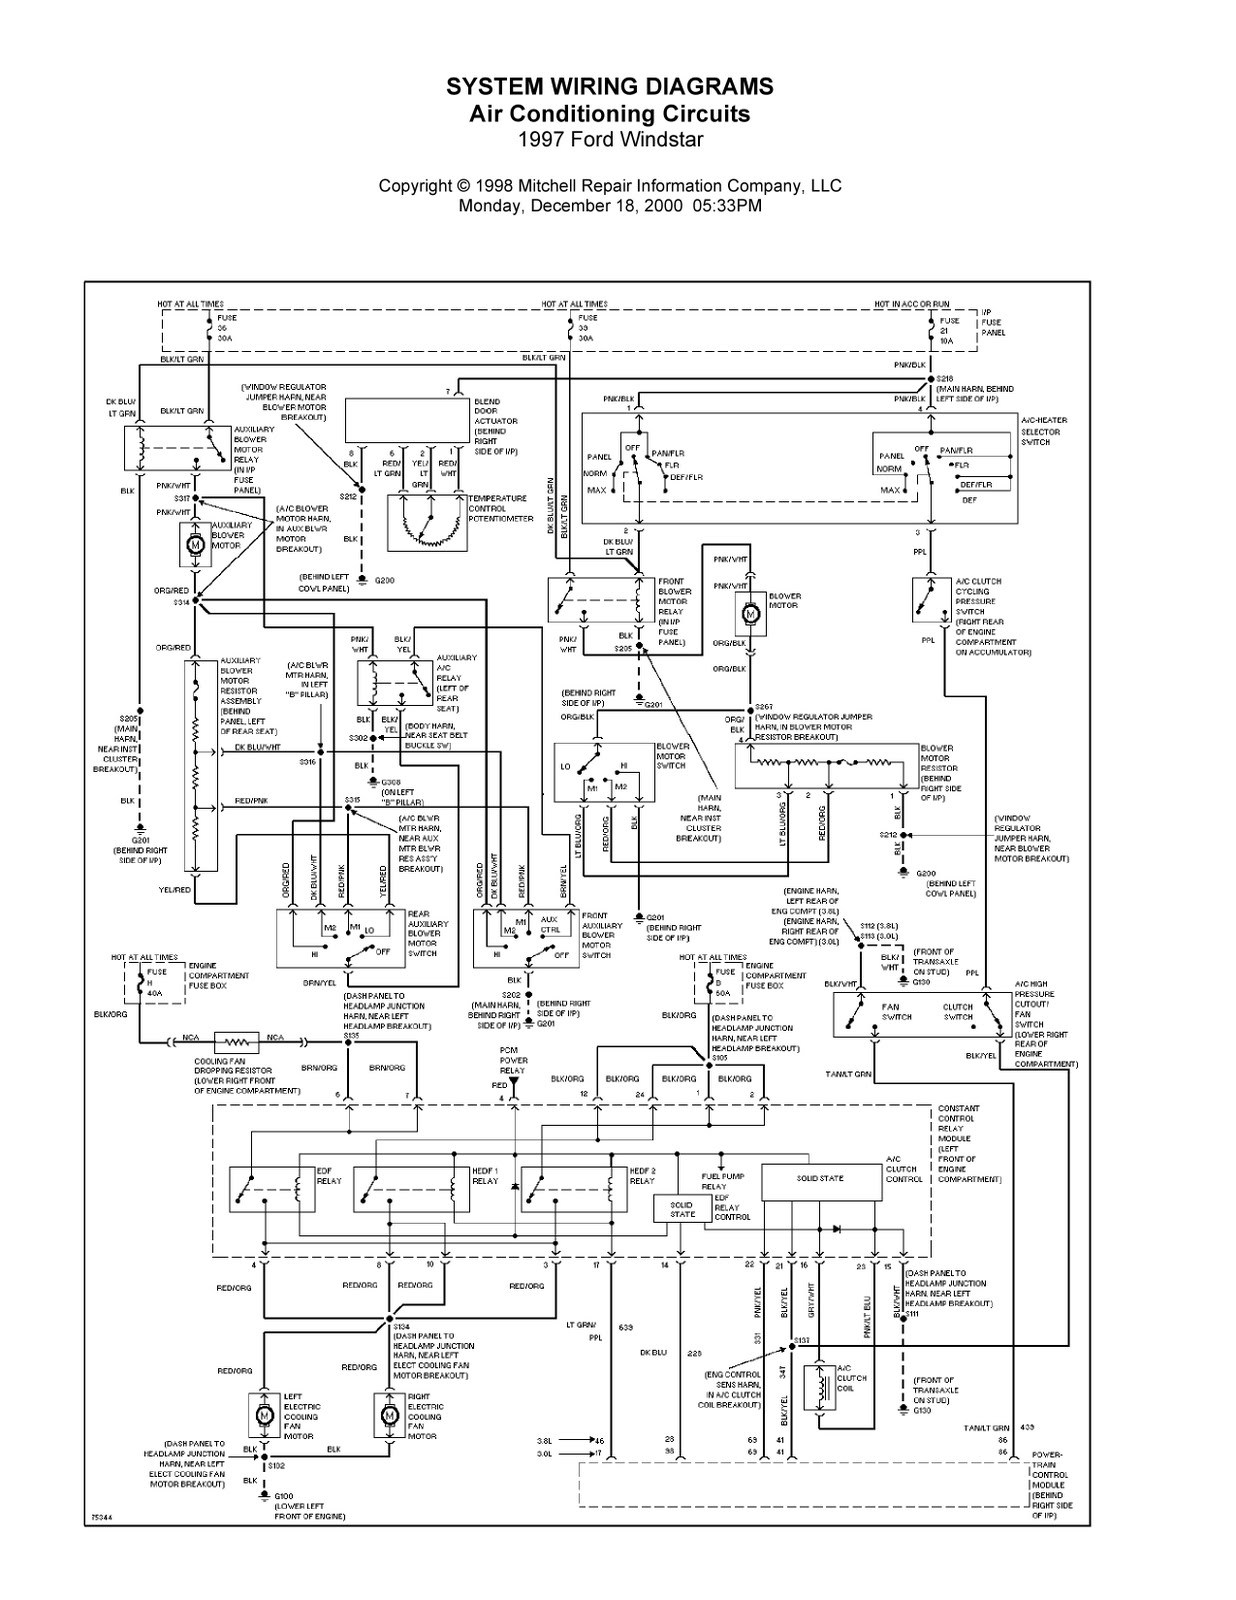 Ford Air Conditioning Wiring Diagram Diagrams Schema Conditioner 1997 Windstar System Tools